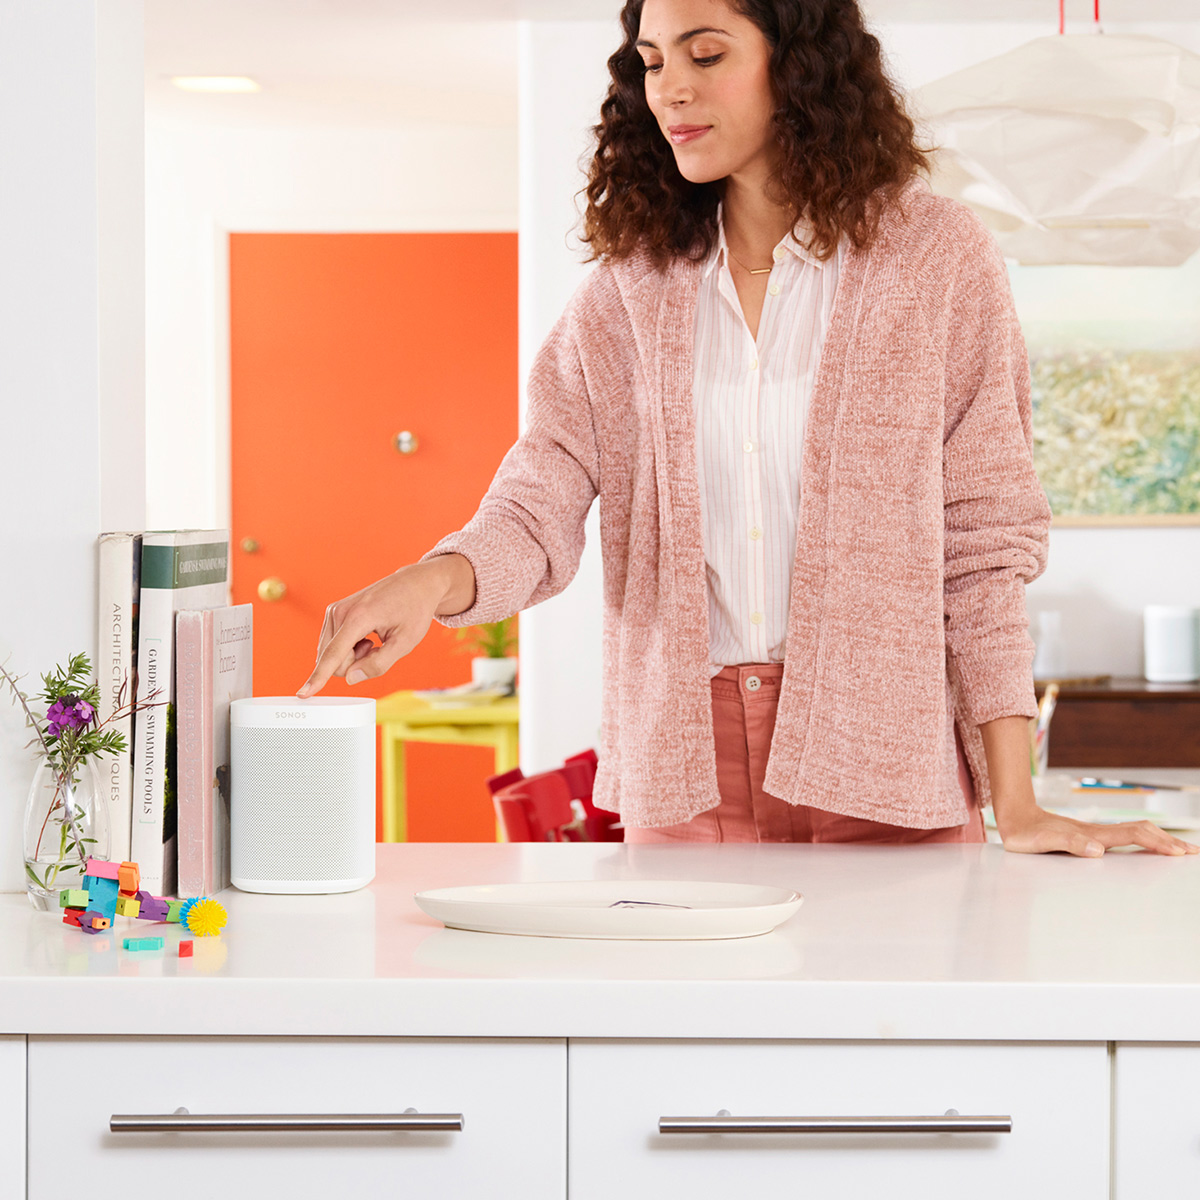 Sonos-Two-Room-Set-with-Sonos-One-Gen-2-Smart-Speaker-with-Alexa-Voice-Control thumbnail 21